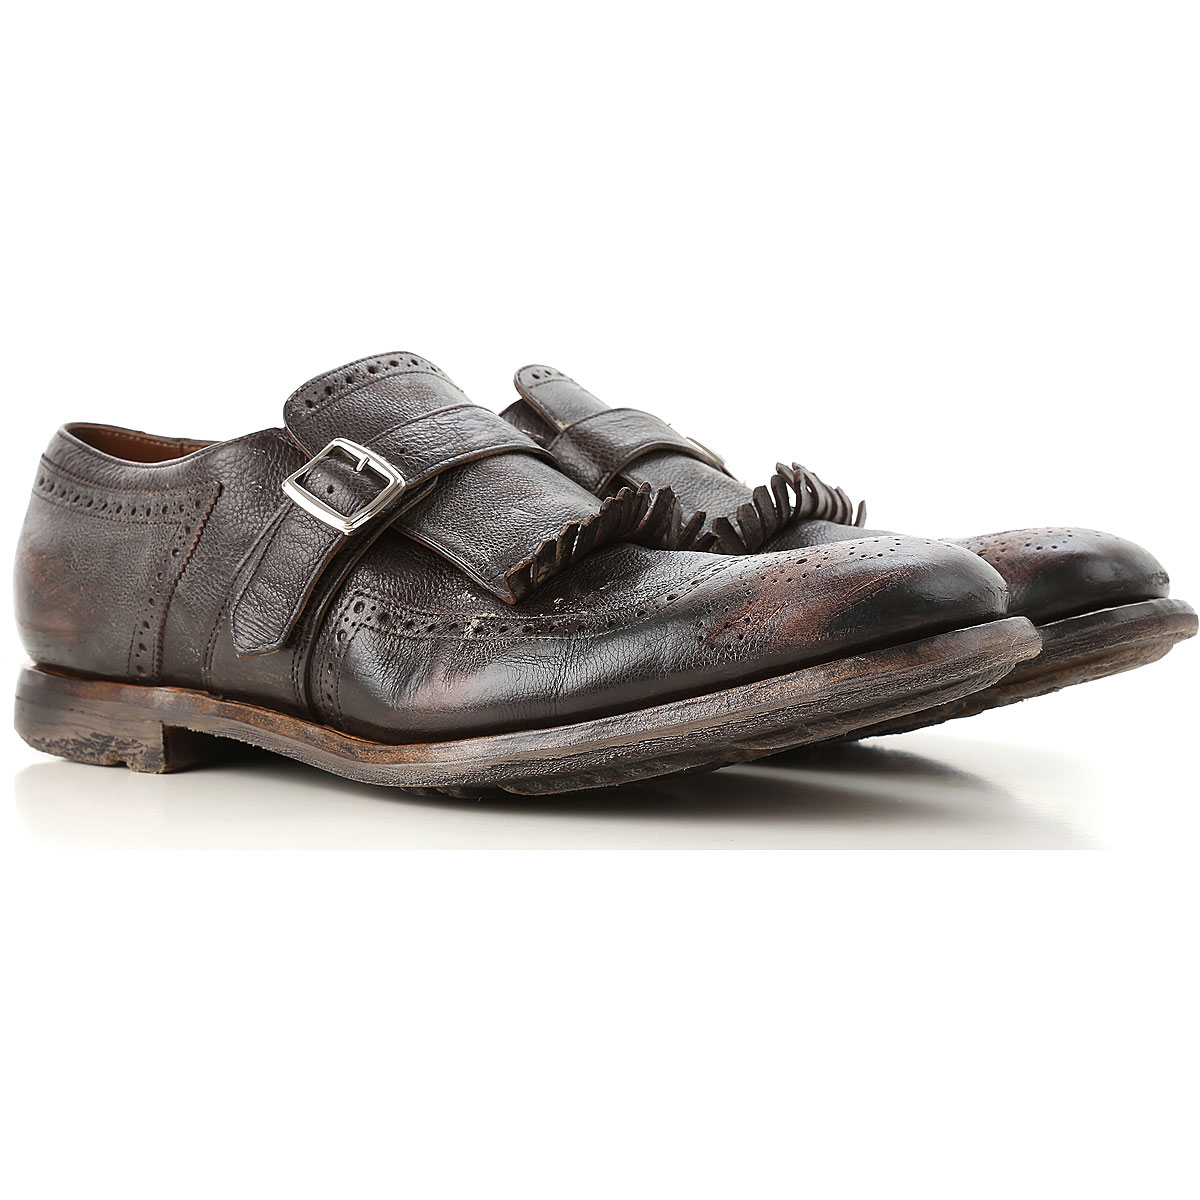 Image of Church's Monk Strap Shoes for Men, Ebony, Leather, 2017, 10 11 7.5 8 8.5 9 9.5